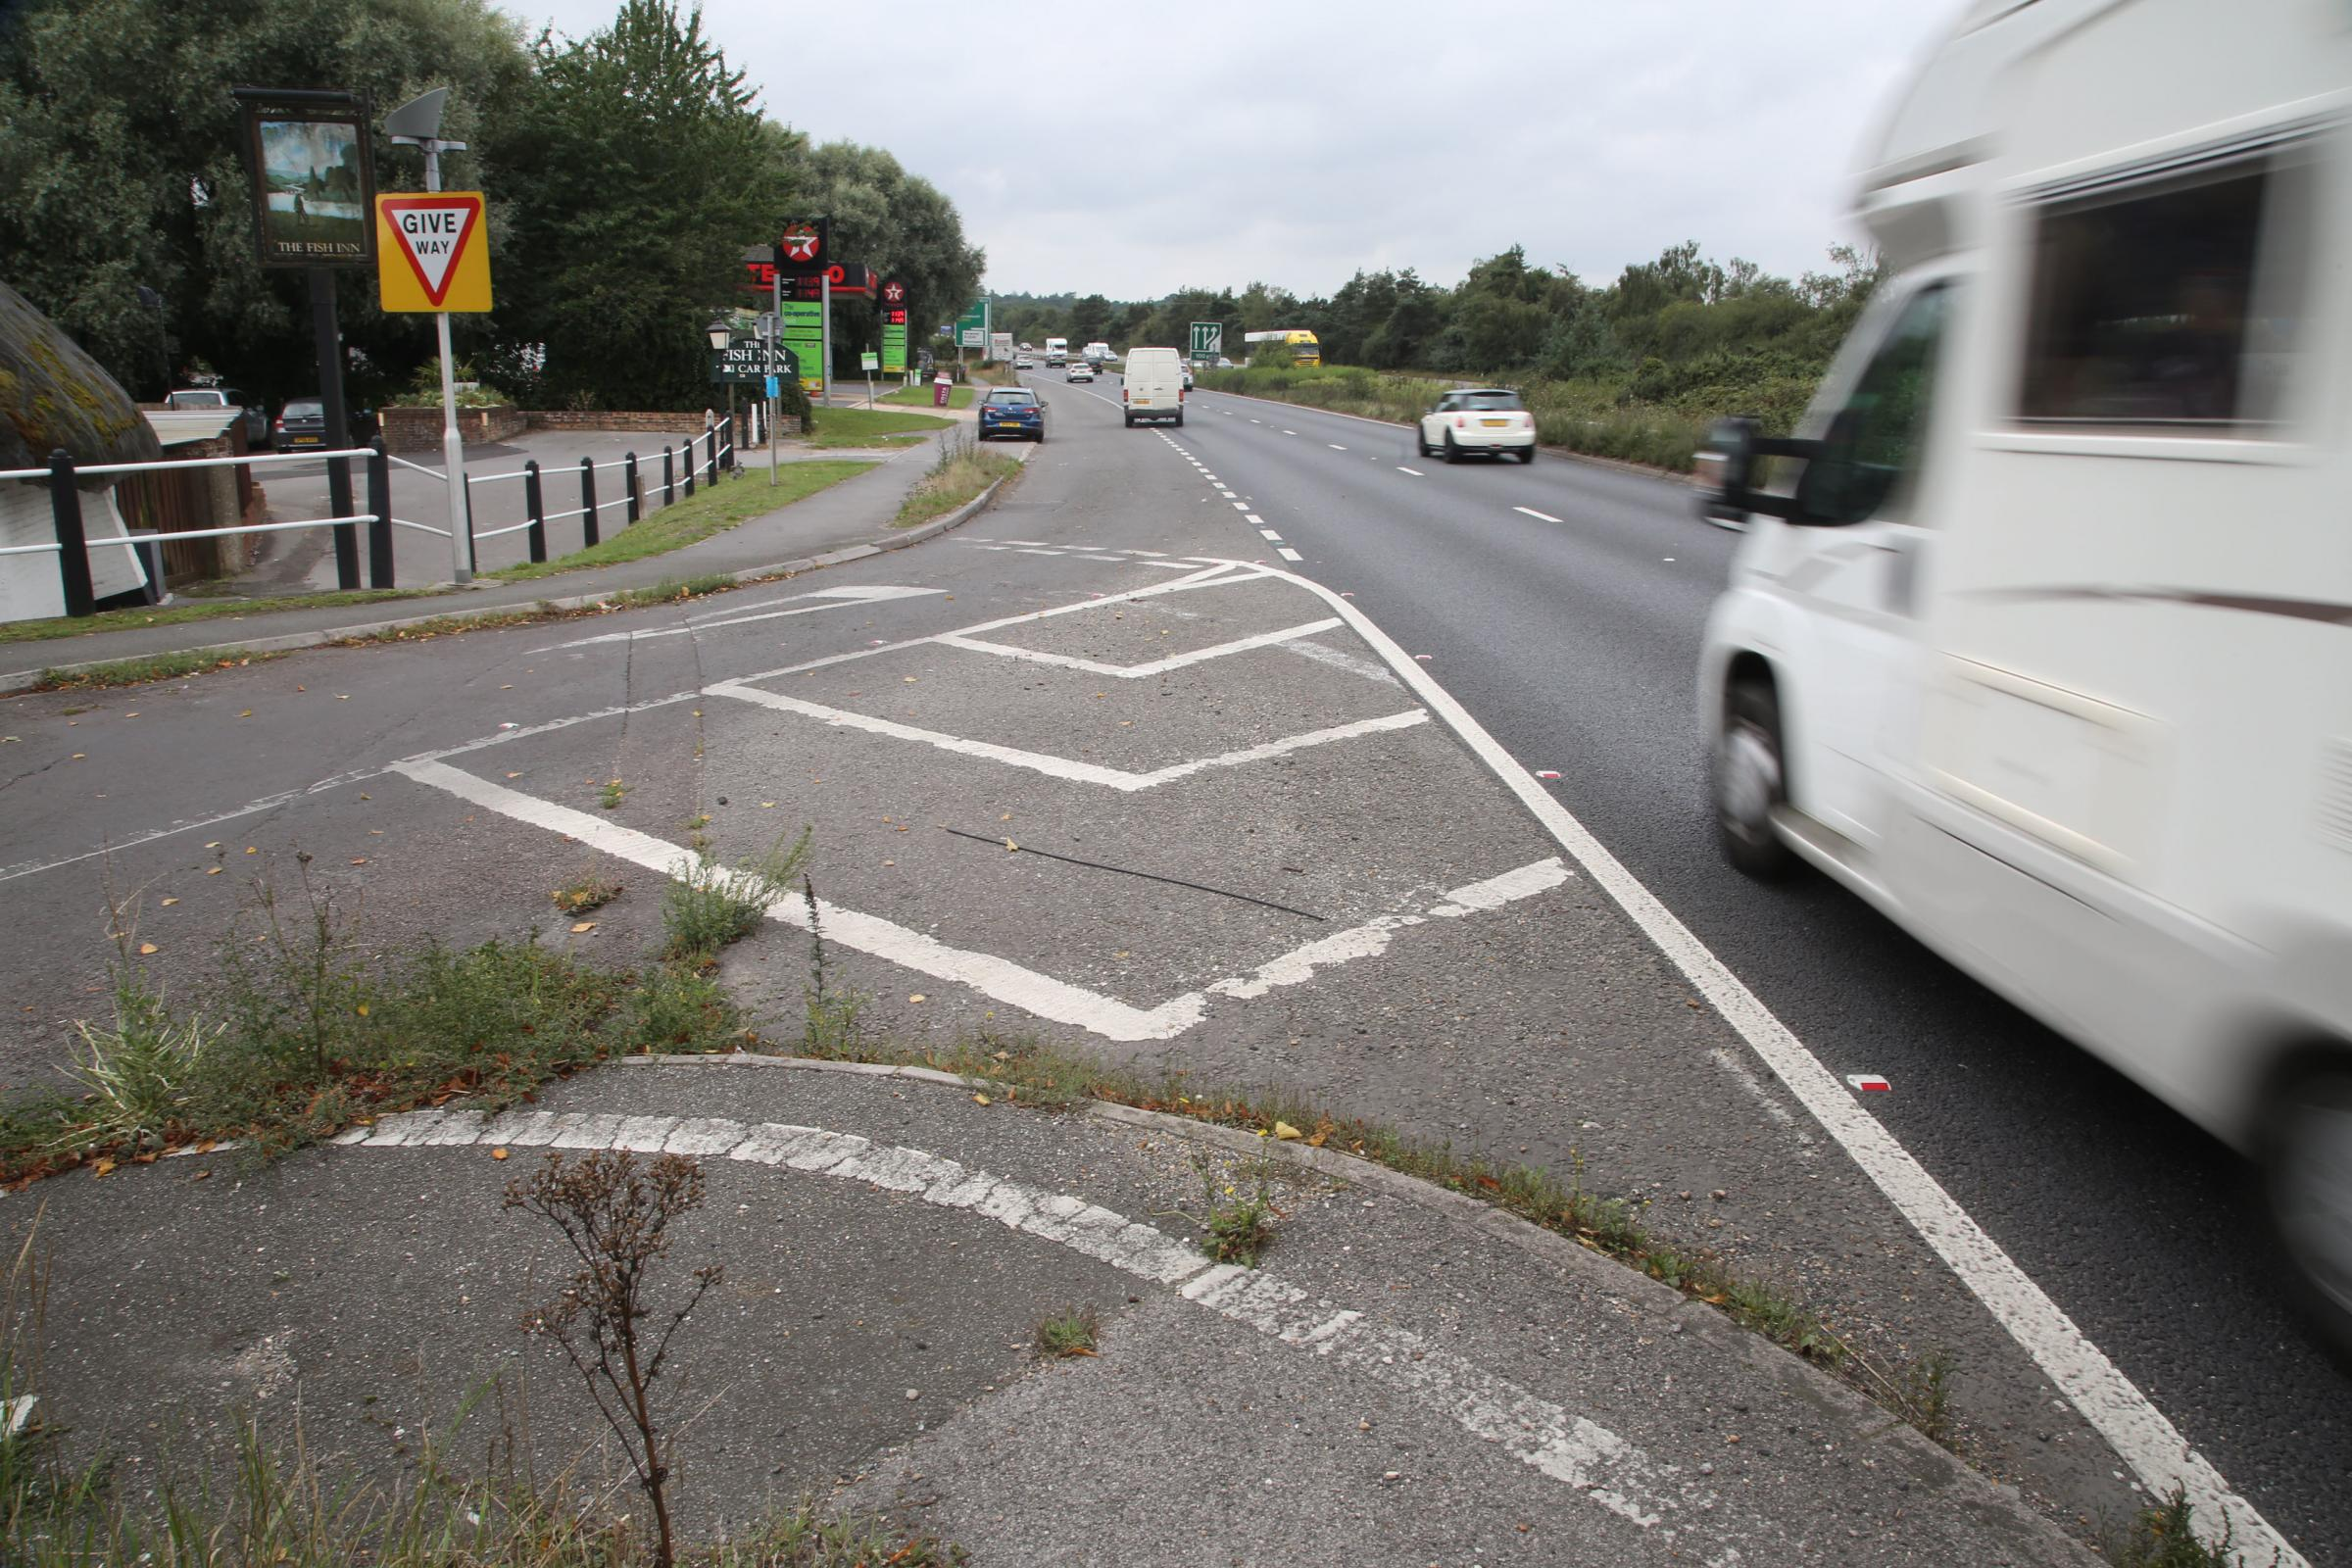 CONCERNS: Highways England still plan to close West Street access to the A31 at Ringwood